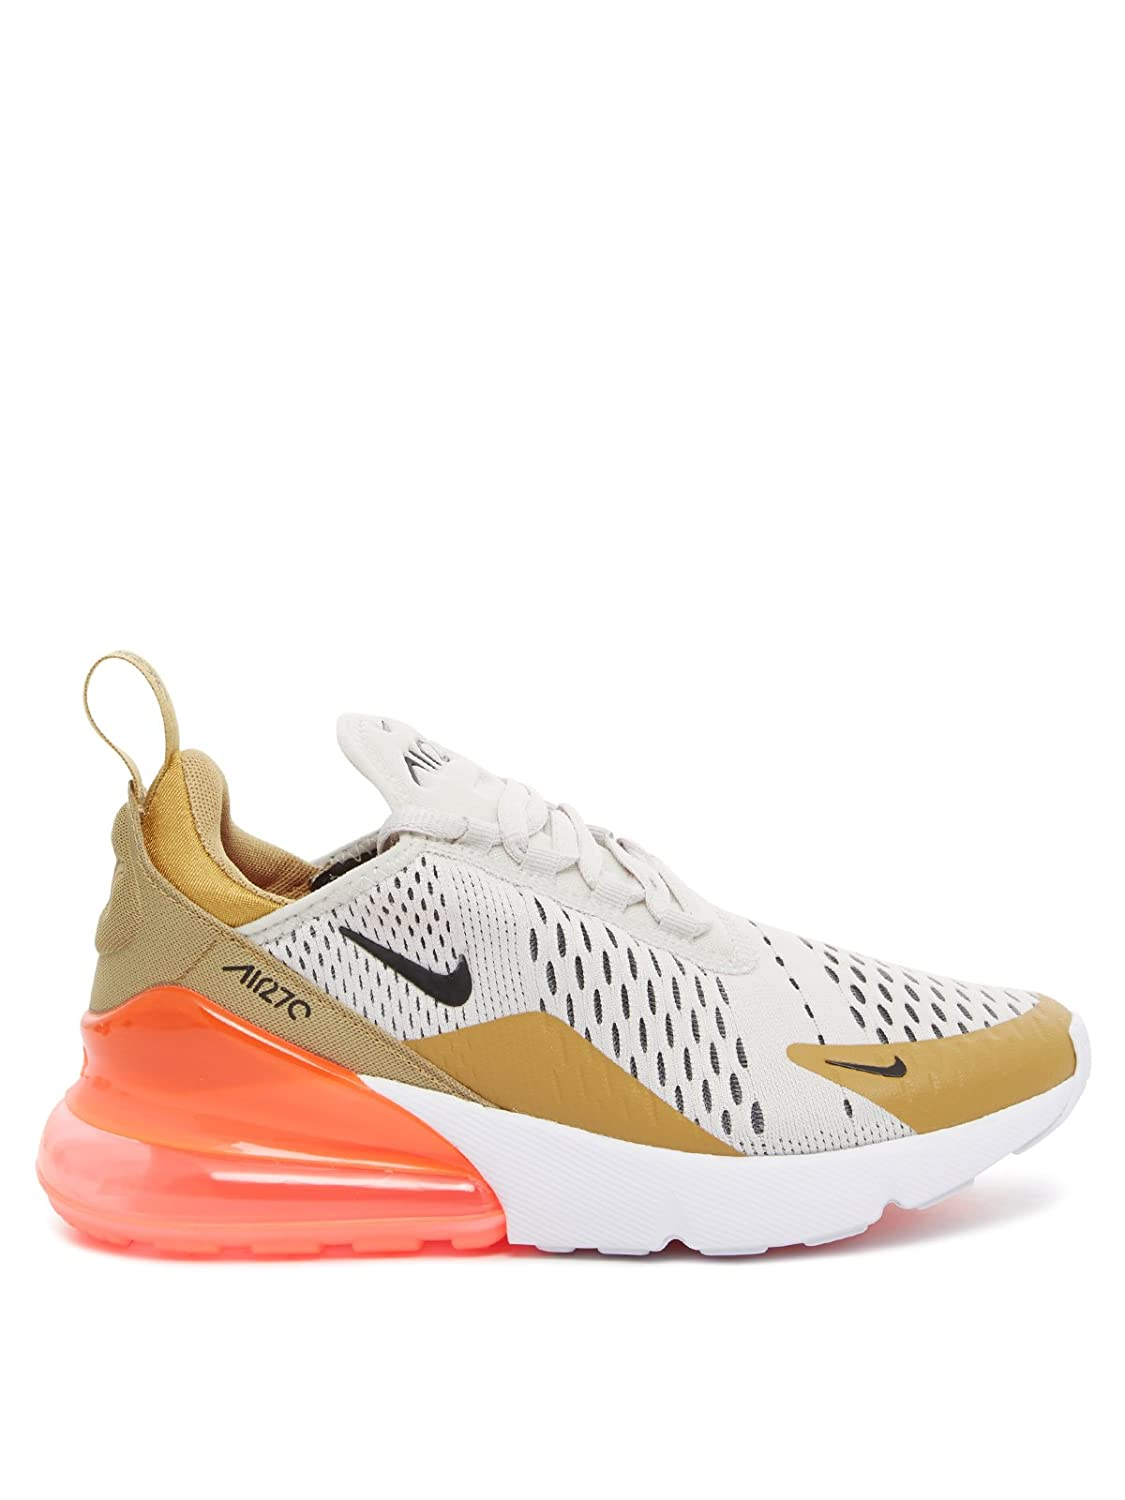 | Nike W AIR MAX 270 Womens Fashion Sneakers